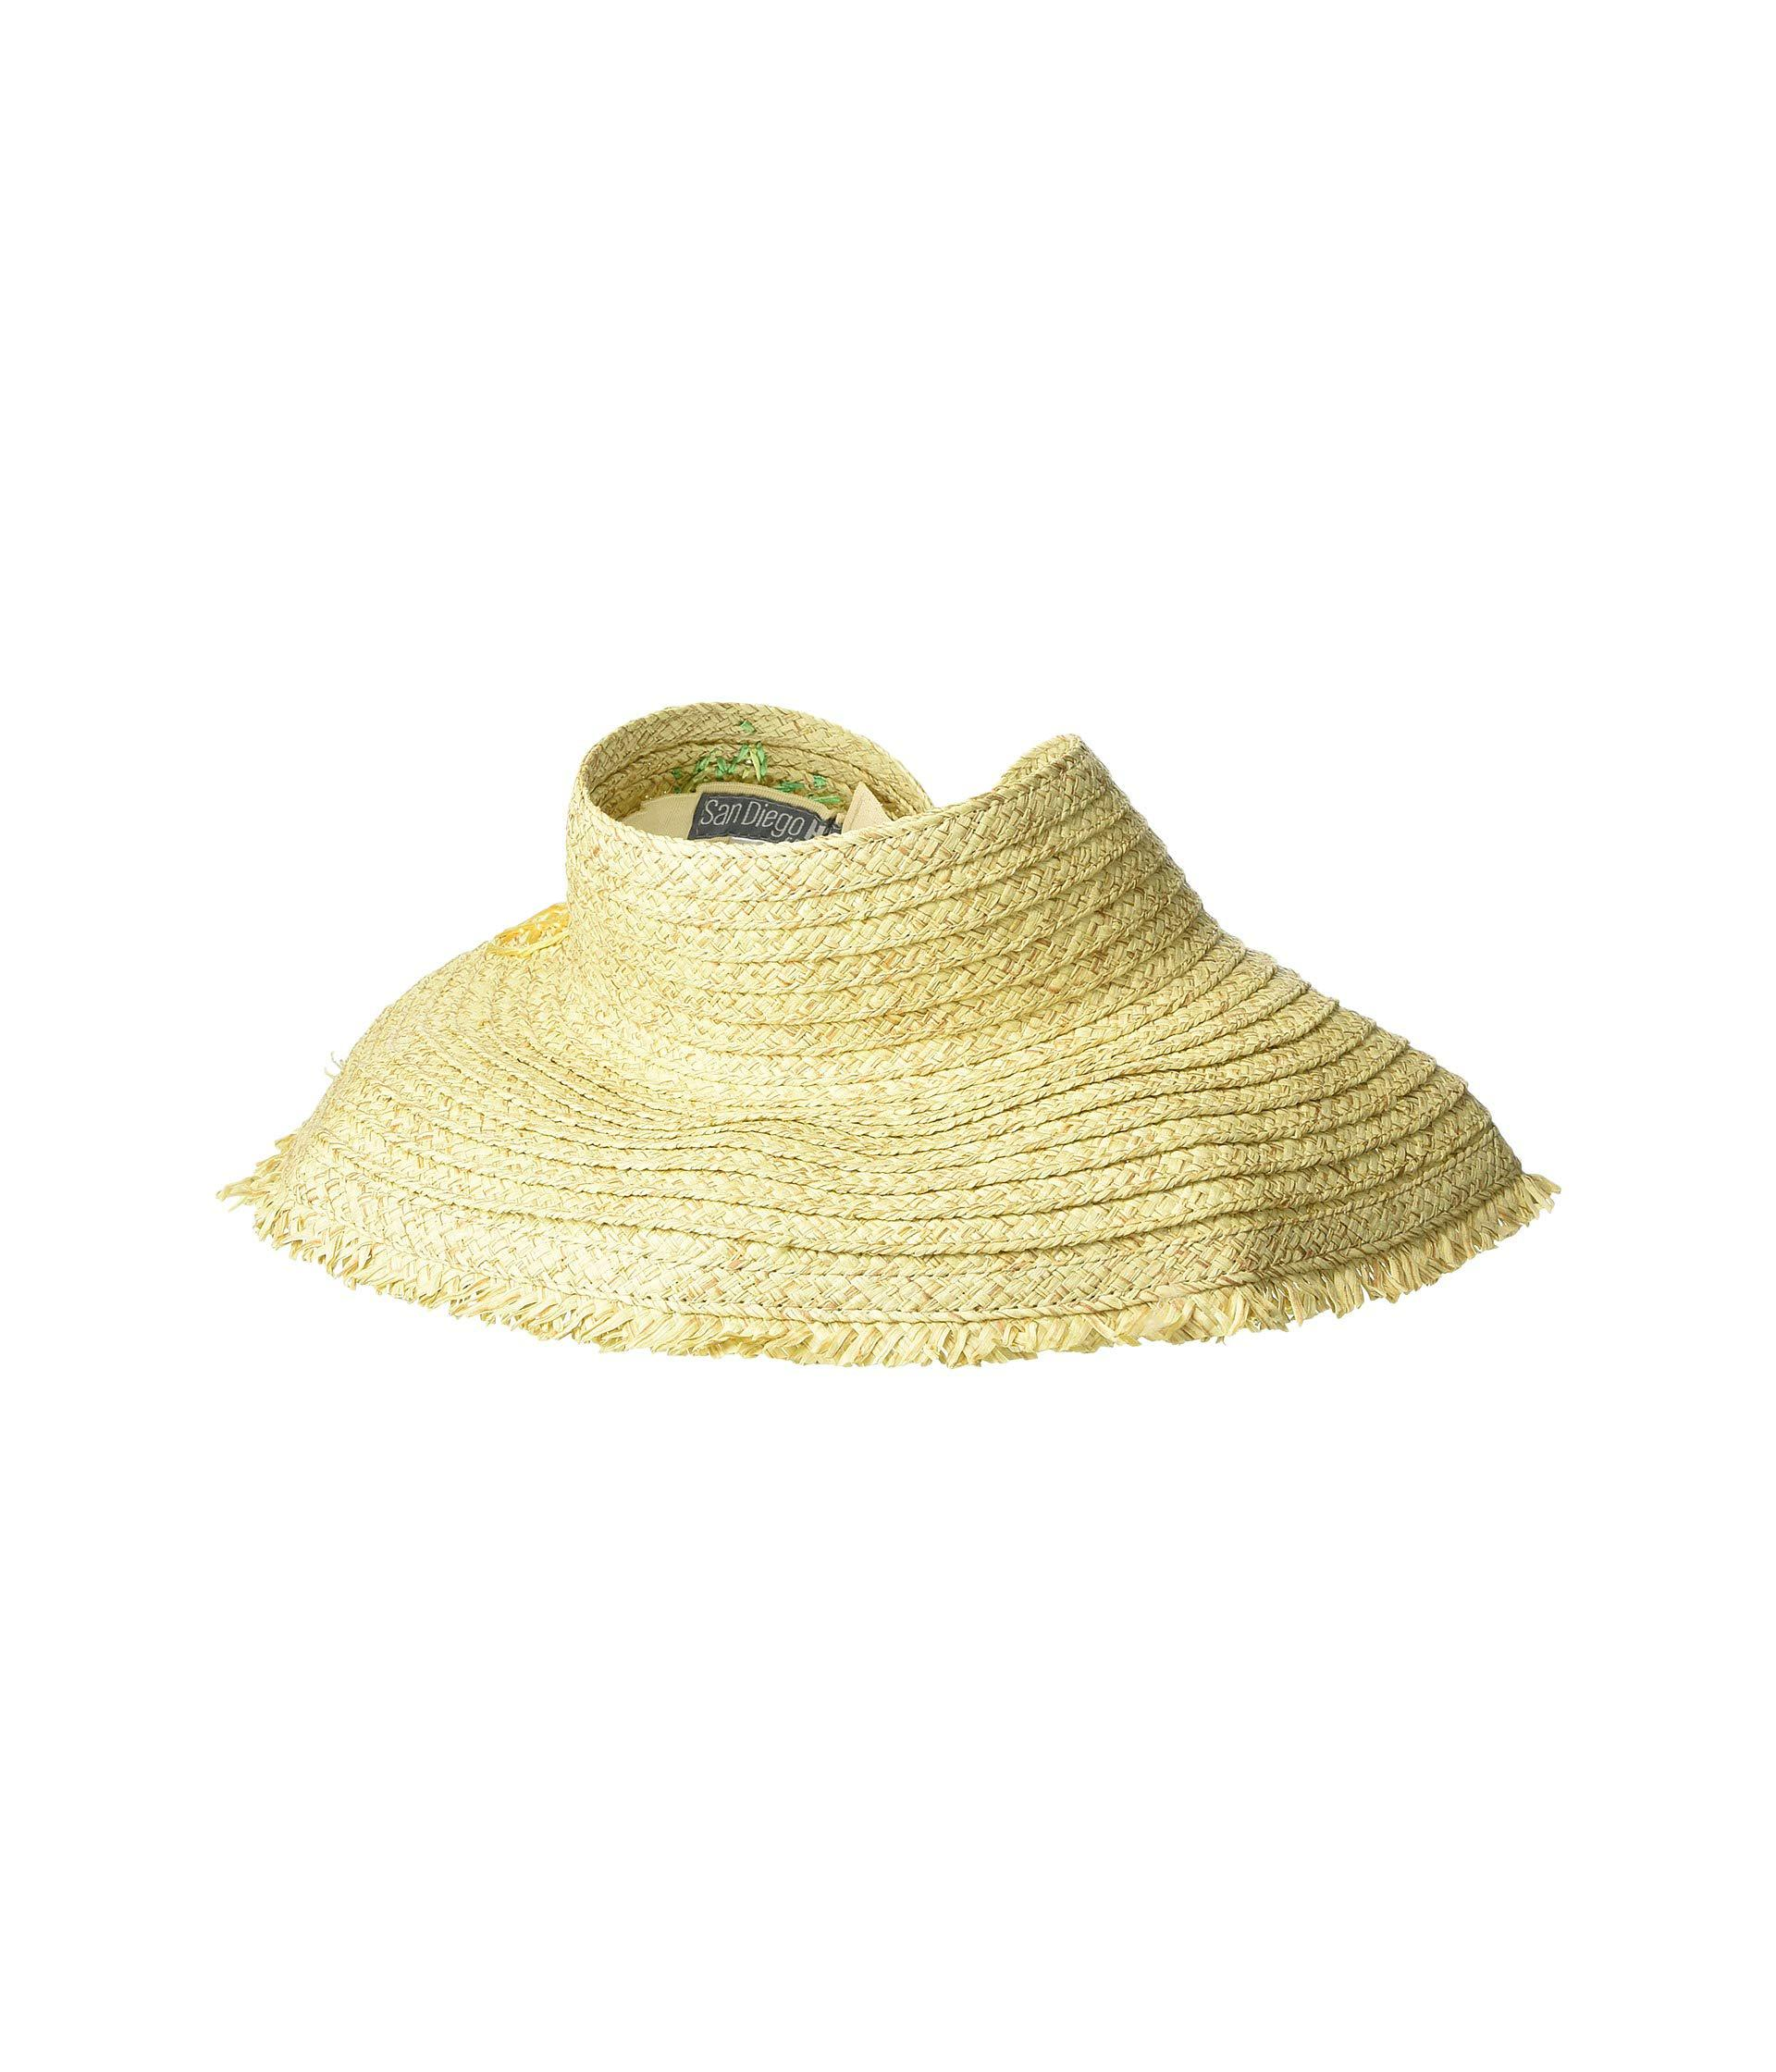 90648407 San Diego Hat Company Pbv016 - Paper Straw Visor With Embroidered ...